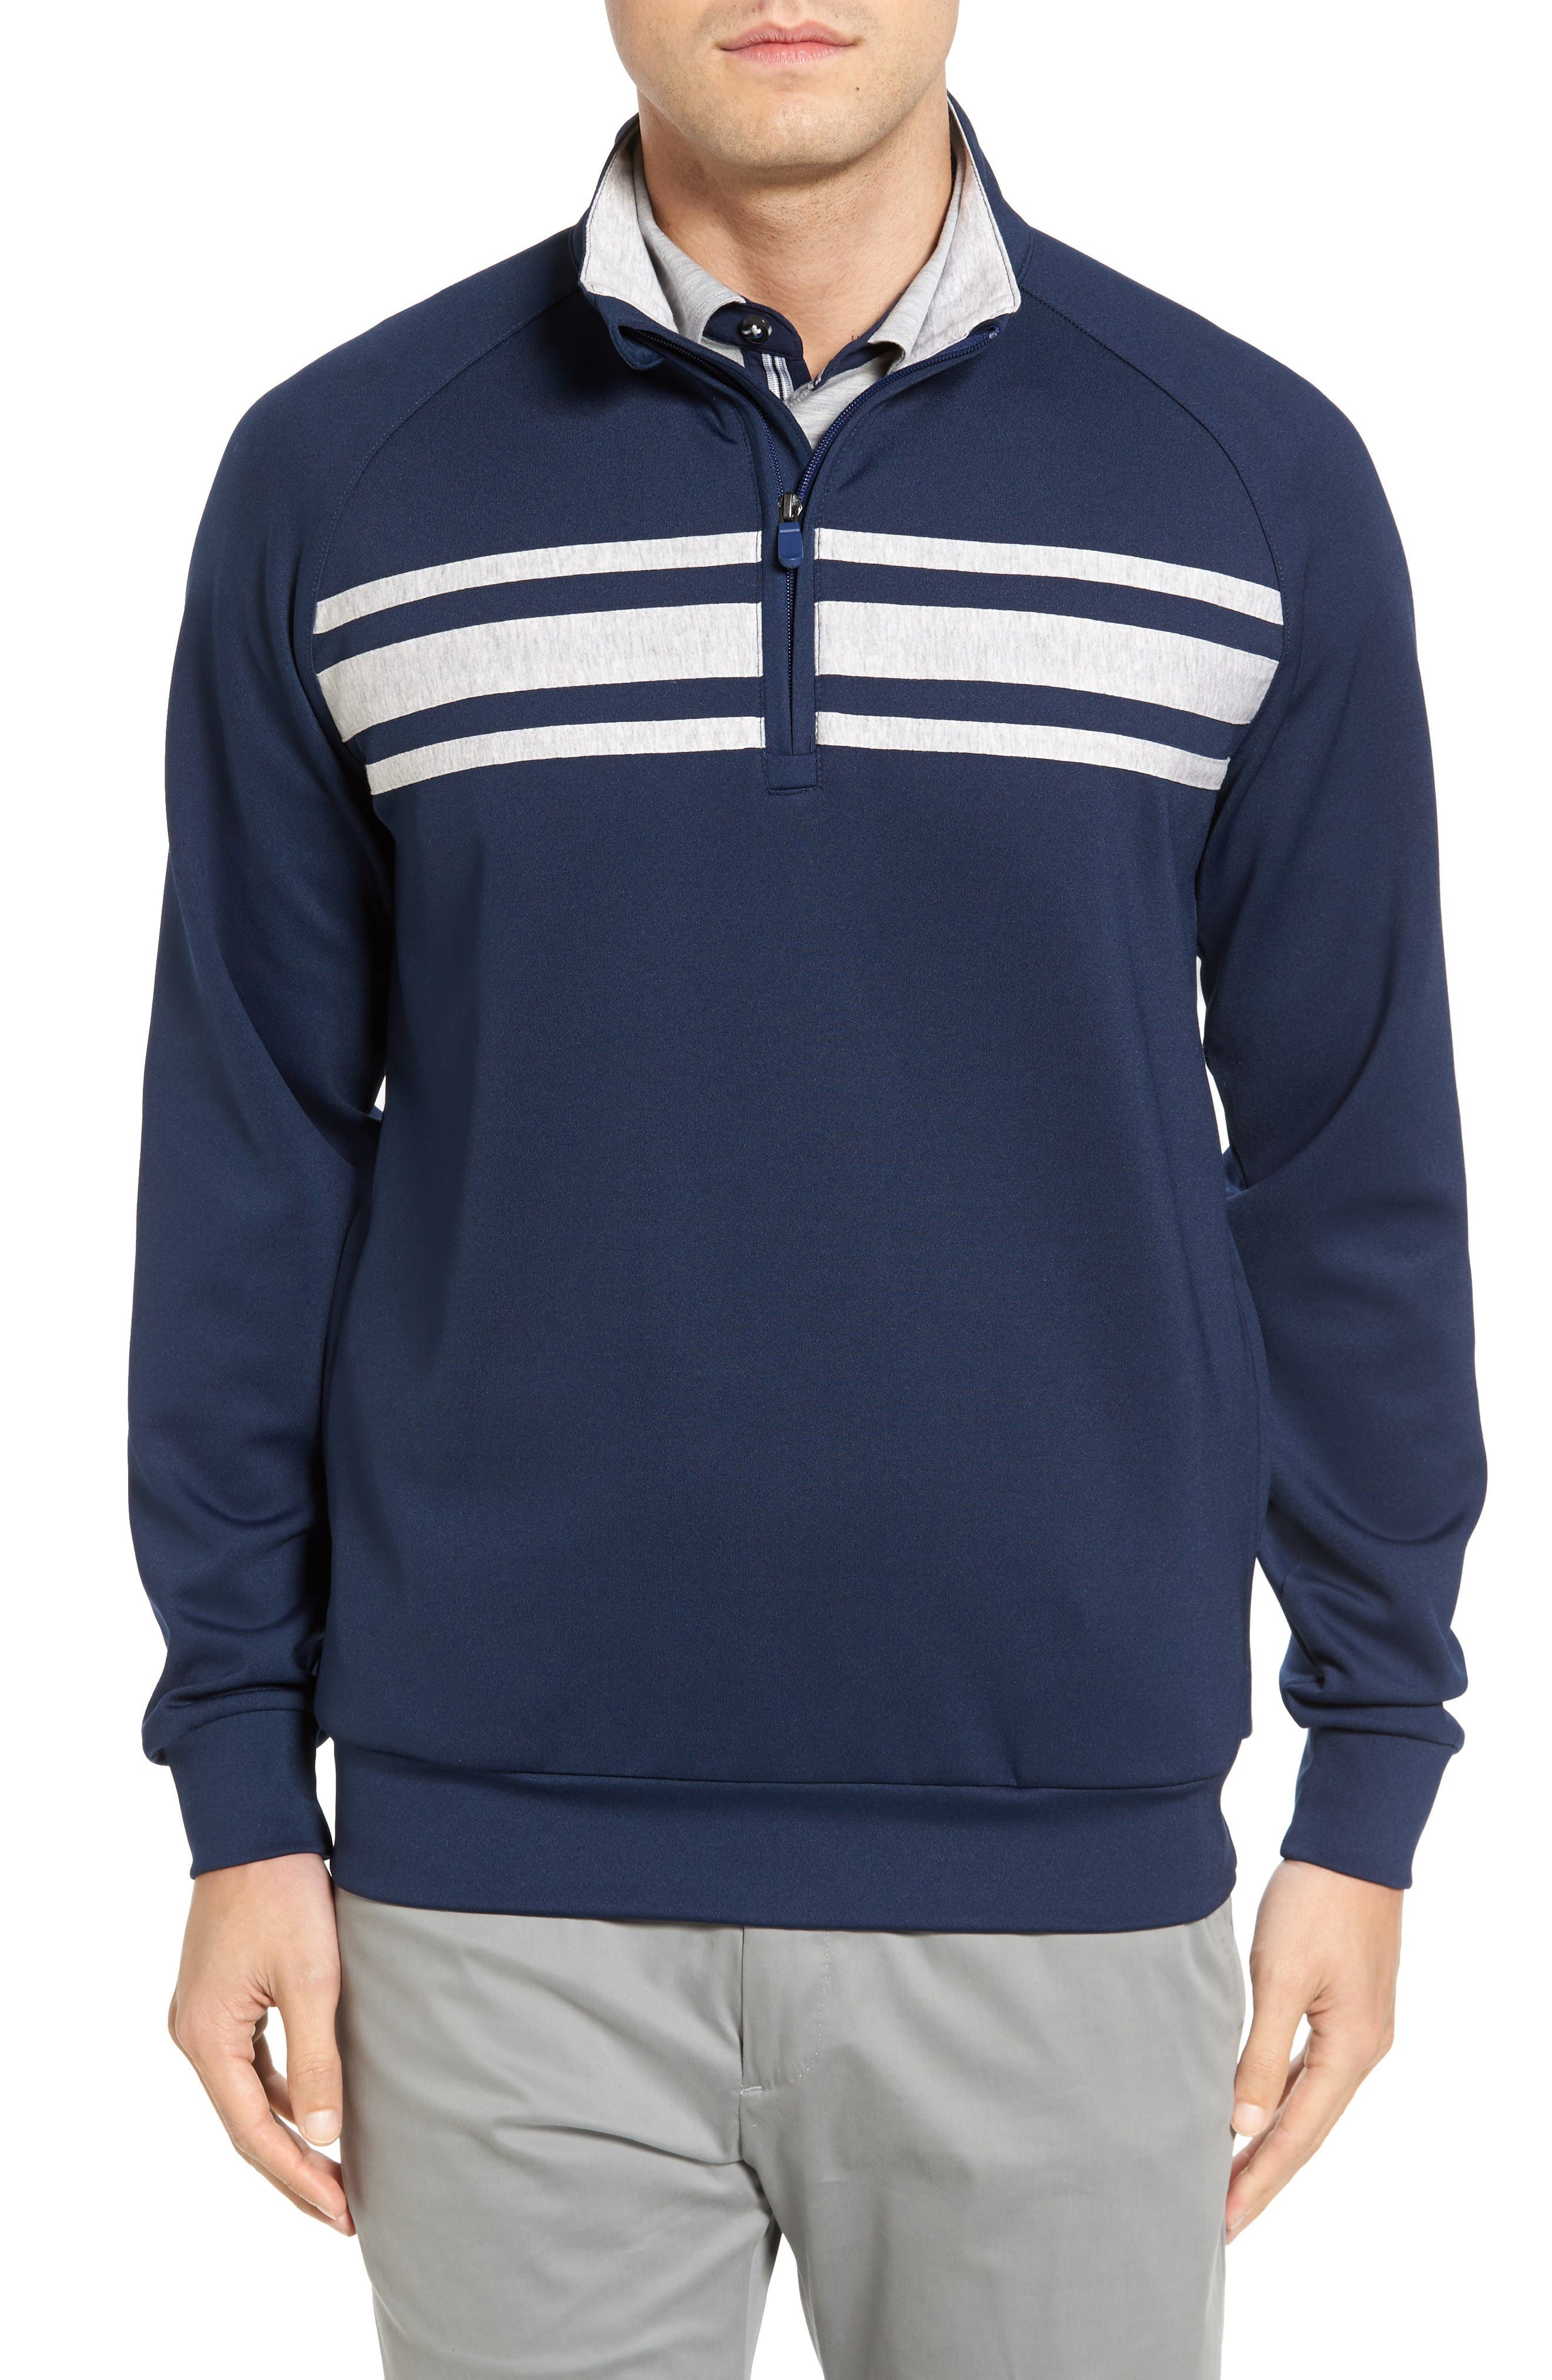 Bobby Jones R18 Trio Tech Quarter Zip Golf Pullover